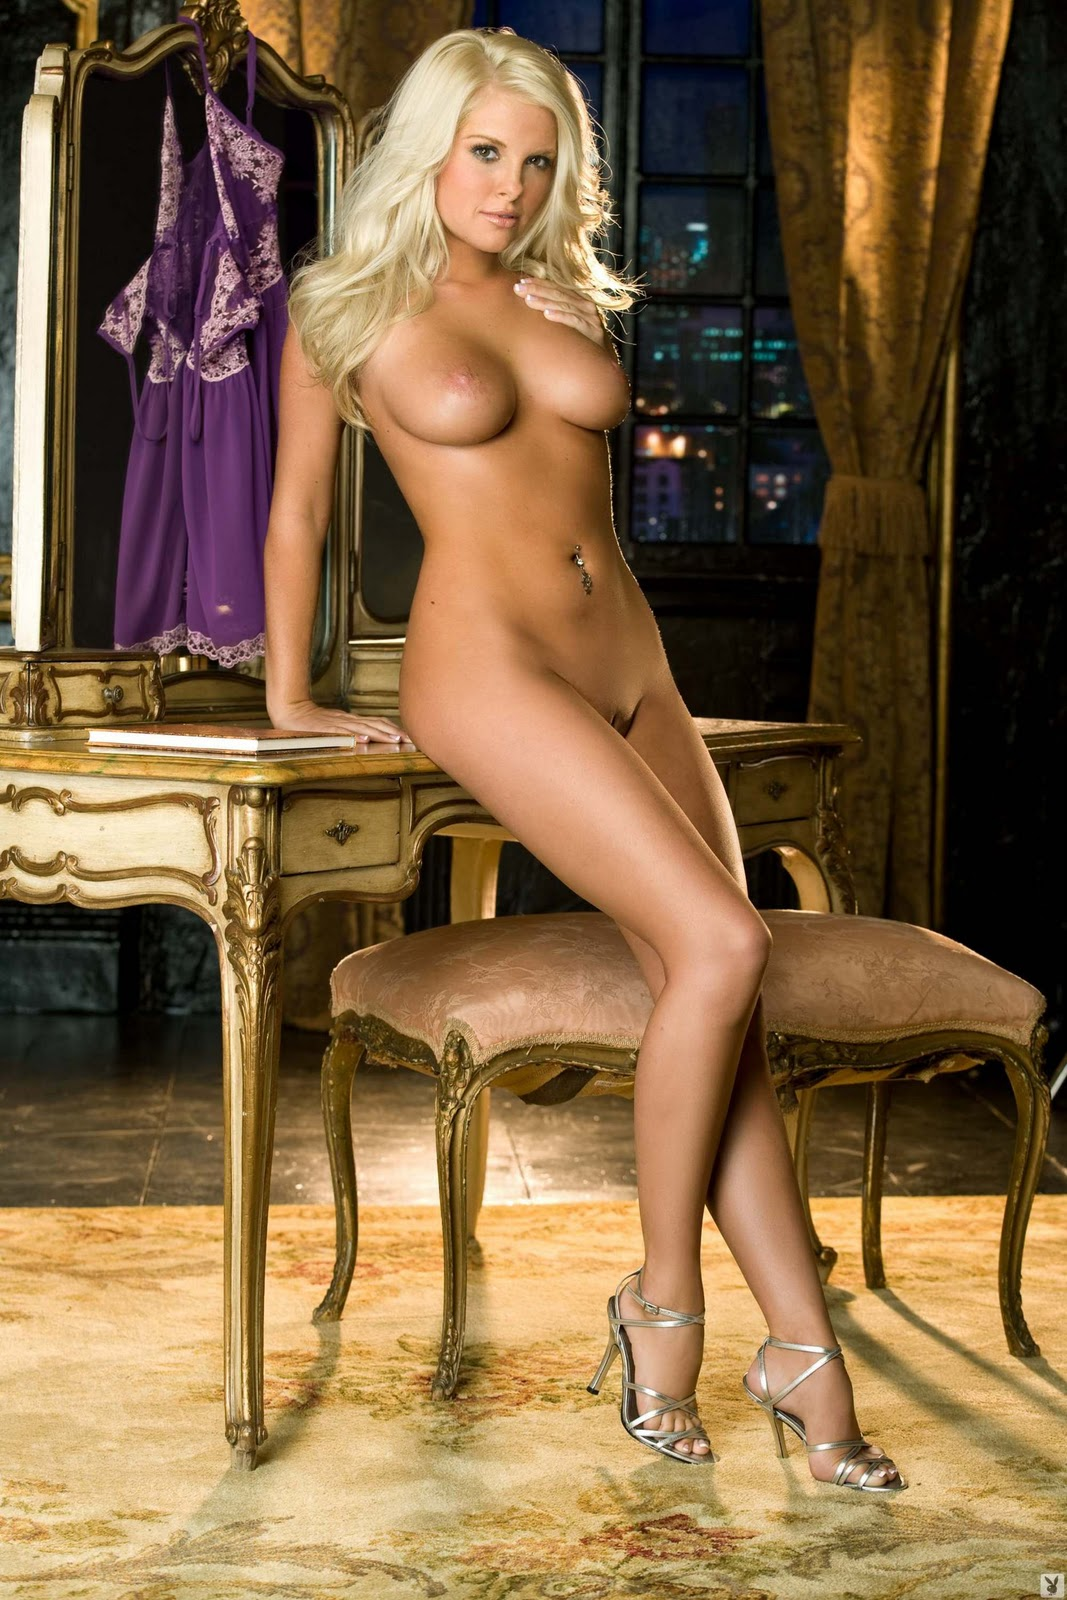 The Holly madison nude uncensored seems